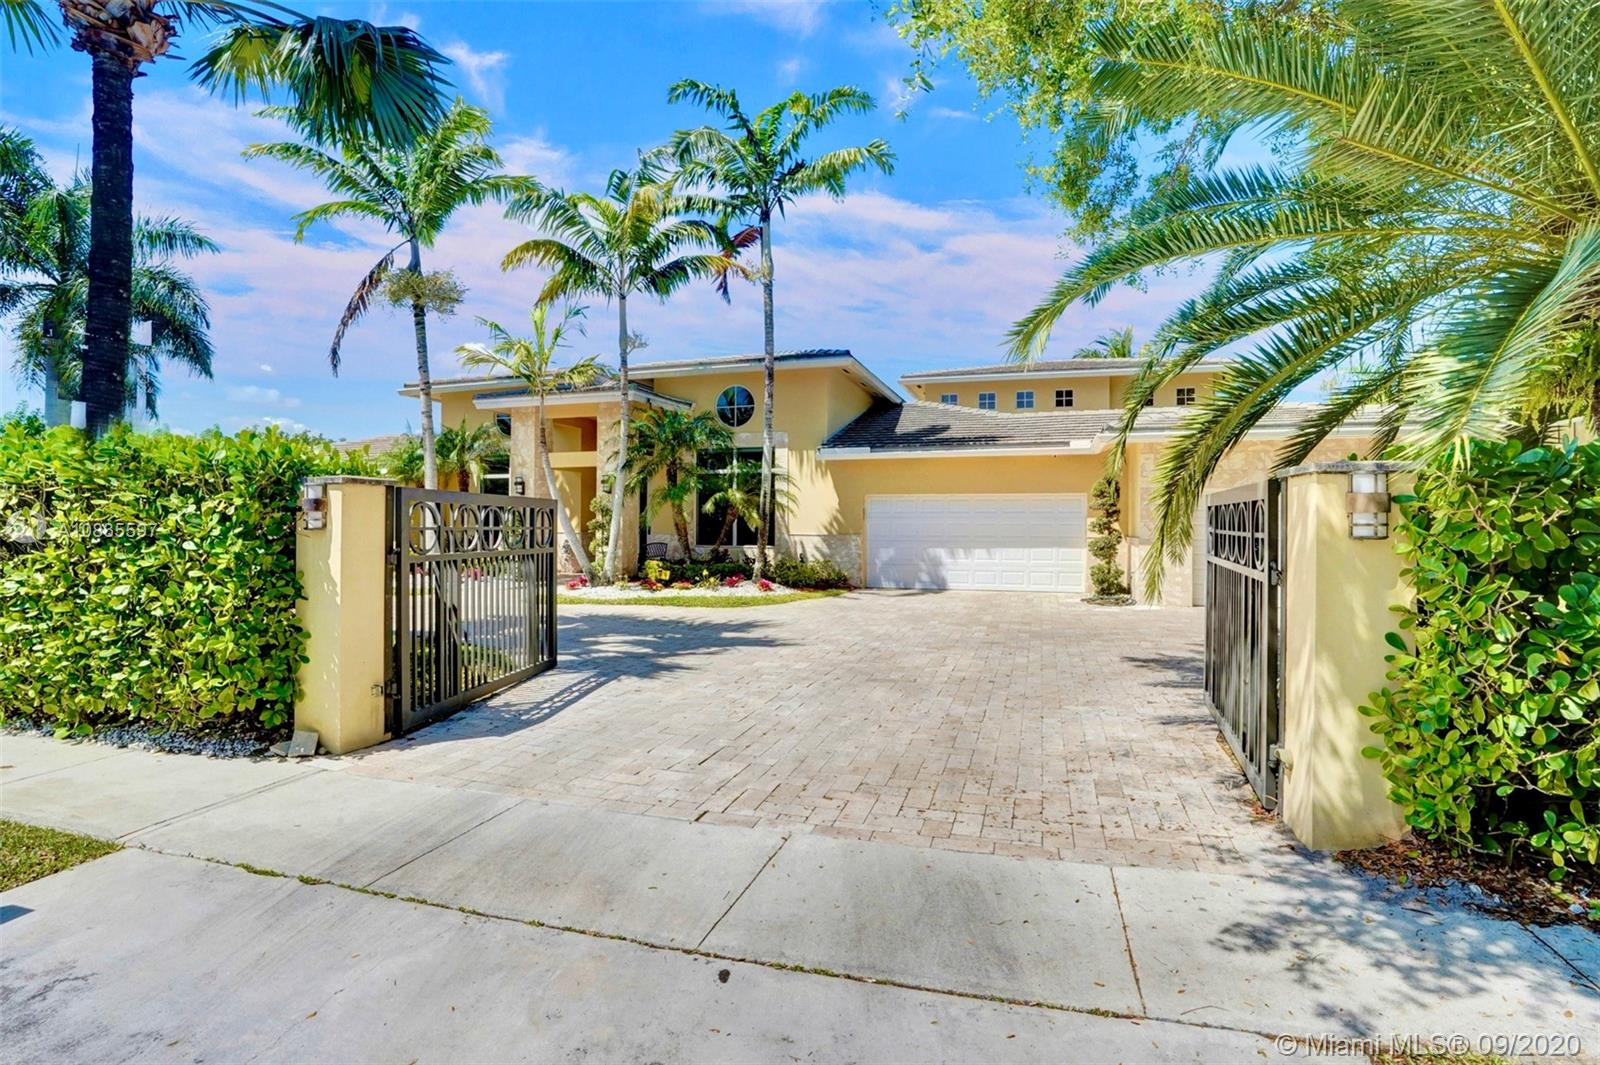 SOUTH FLORIDA LIVING AT HIS FINEST IN THIS ELEGANT UNIQUE MASTERPIECE THAT SEATS BEHIND GATES IN A PRIVATE WATERFRONT PRESERVE. NEWER OPULENT OVERSIZED SWIMMING POOL, STUNNING SUMMER KITCHEN, COVERED EXPANSIVE & EXPENSIVE MODERN PATIO, HIGH IMPACT WINDOWS, SMART HOME FEATURES, VERY OPEN MODERN SPACIOUS FLOOR PLAN LAY OUT, DECORATIVE WOODEN PANNEL WALLS, PROJECTOR MONITOR TV, MARBLE FLOORS IN MAIN LIVING AREAS, WOOD FLOORS IN ALL BEDROOMS, LARGE KITCHEN W/STAINLESS STEEL APPLIANCES, FORMAL DINNING ROOM, MAJESTIC FAMILY ROOM W/SWEEPING WOODEN CEILINGS, LARGE MASTER BEDROOM, LUXURIOUS MASTER BATHROOM, JETS, HOT TUB, MARBLE, UNIQUE DETAILS, BOOSTING 5 BEDROOMS, 5 BATHROOMS, PRIVATE OFFICE, 3 CAR GARAGE AND MANY MORE DETAILS INCLUDING LUSH LANDSCAPING. CALL TODAY FOR PRIVATE SHOWINGS.